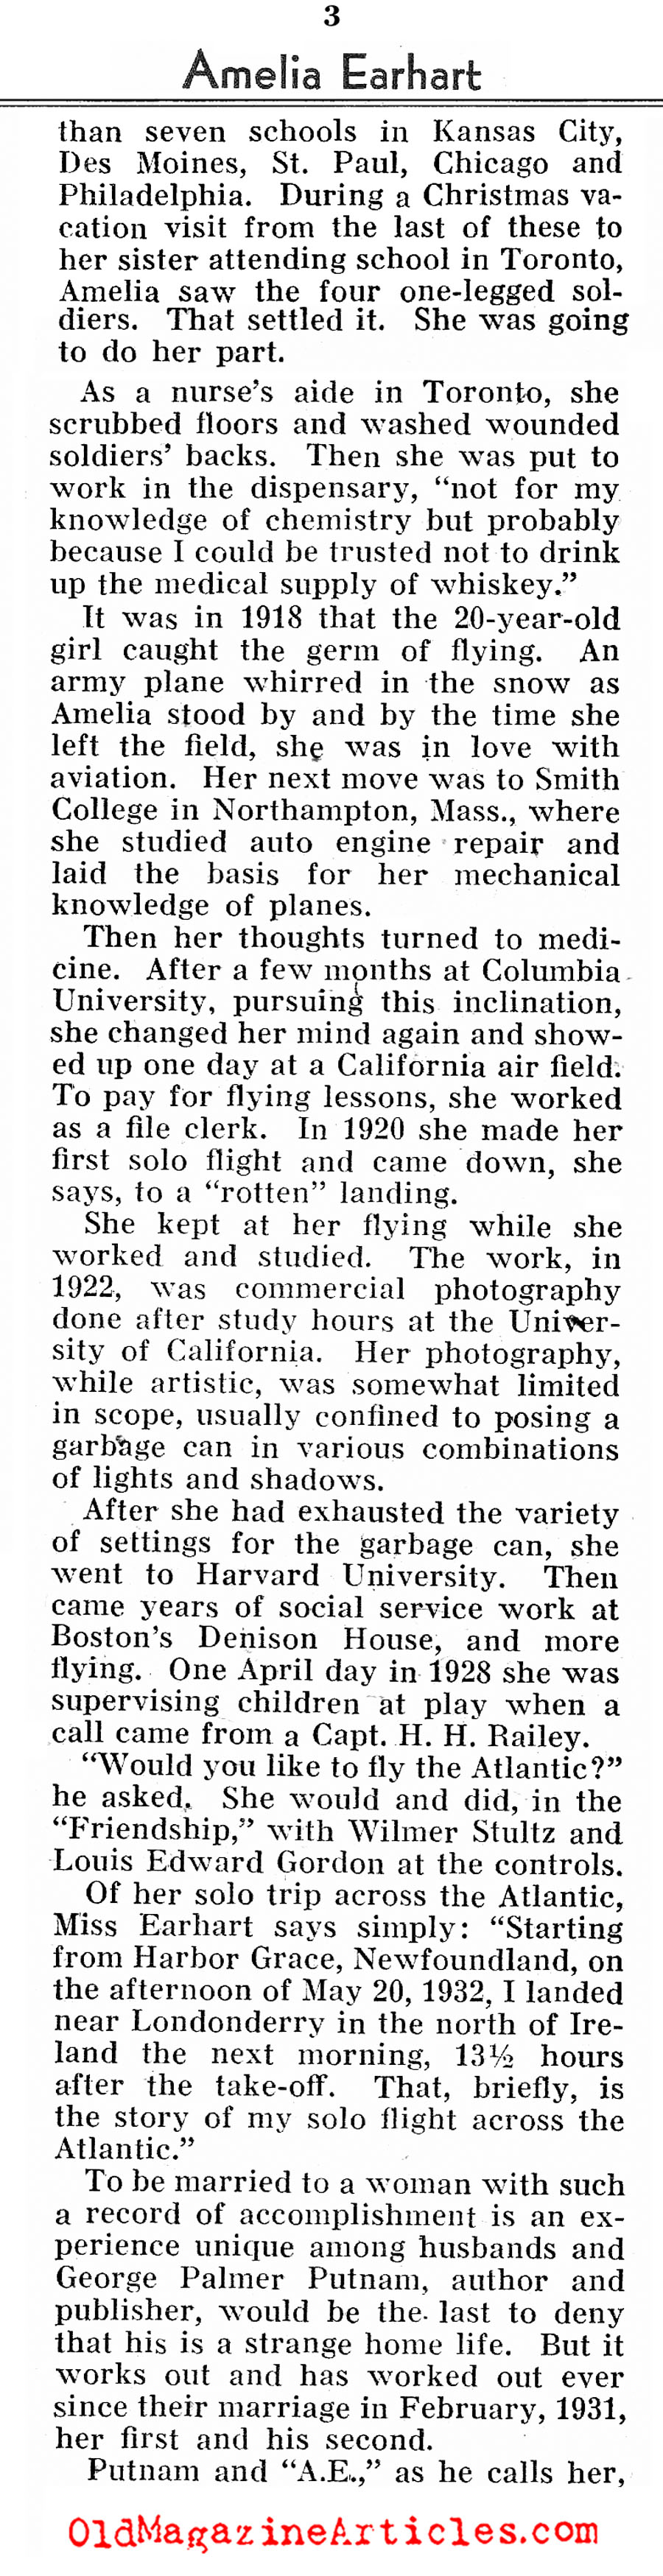 The Doomed Amelia Earhart (Pathfinder Magazine, 1937)